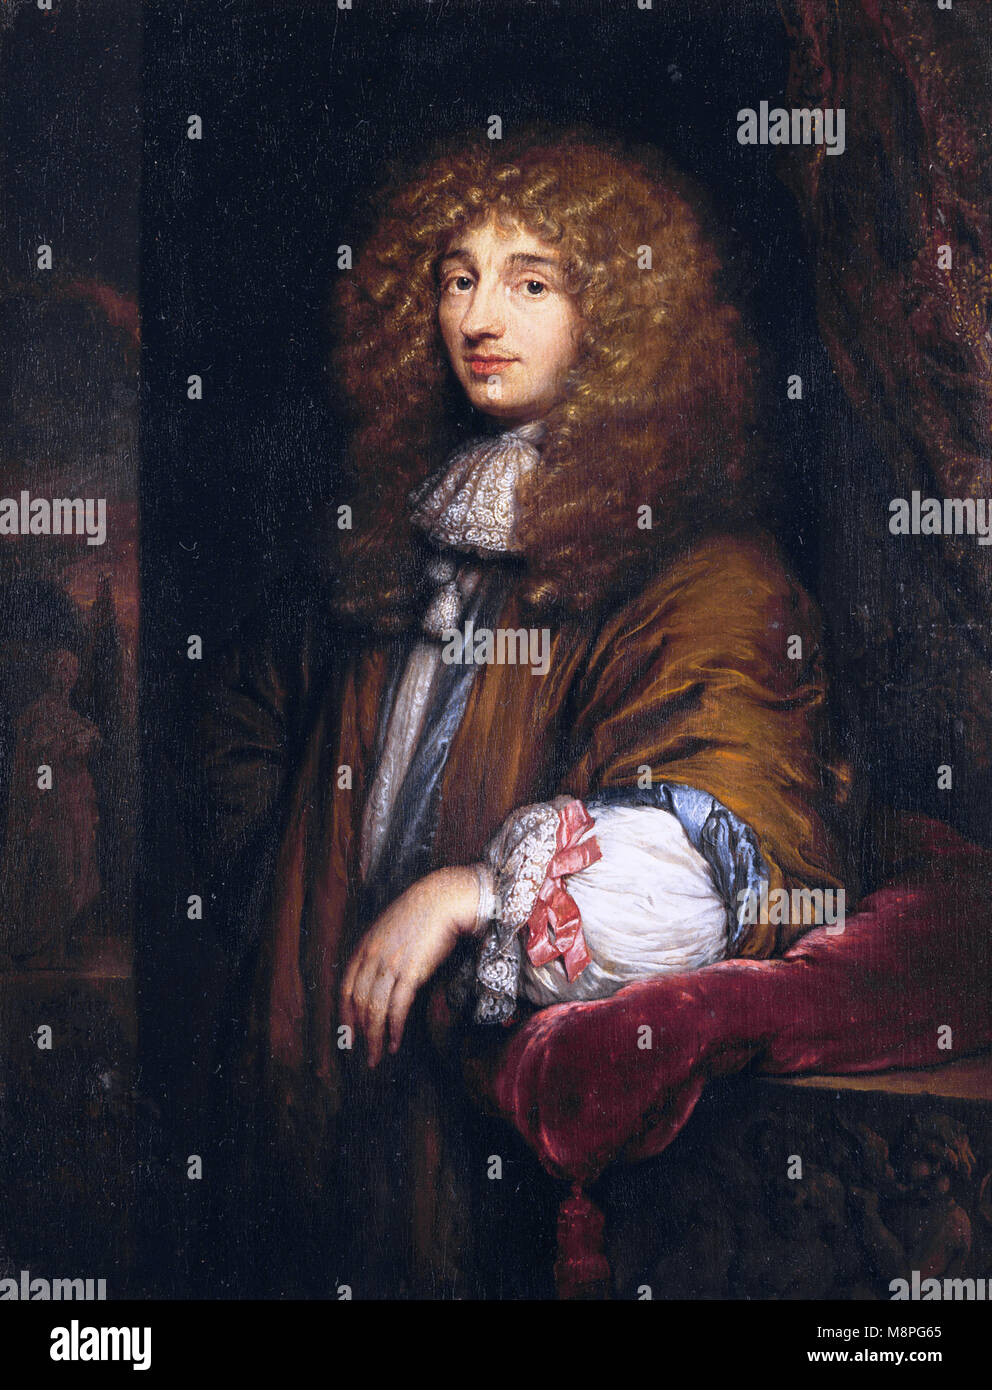 Christiaan Huygens, (1629 – 1695) Dutch scientist, physicist, mathematician, astronomer and inventor - Stock Image